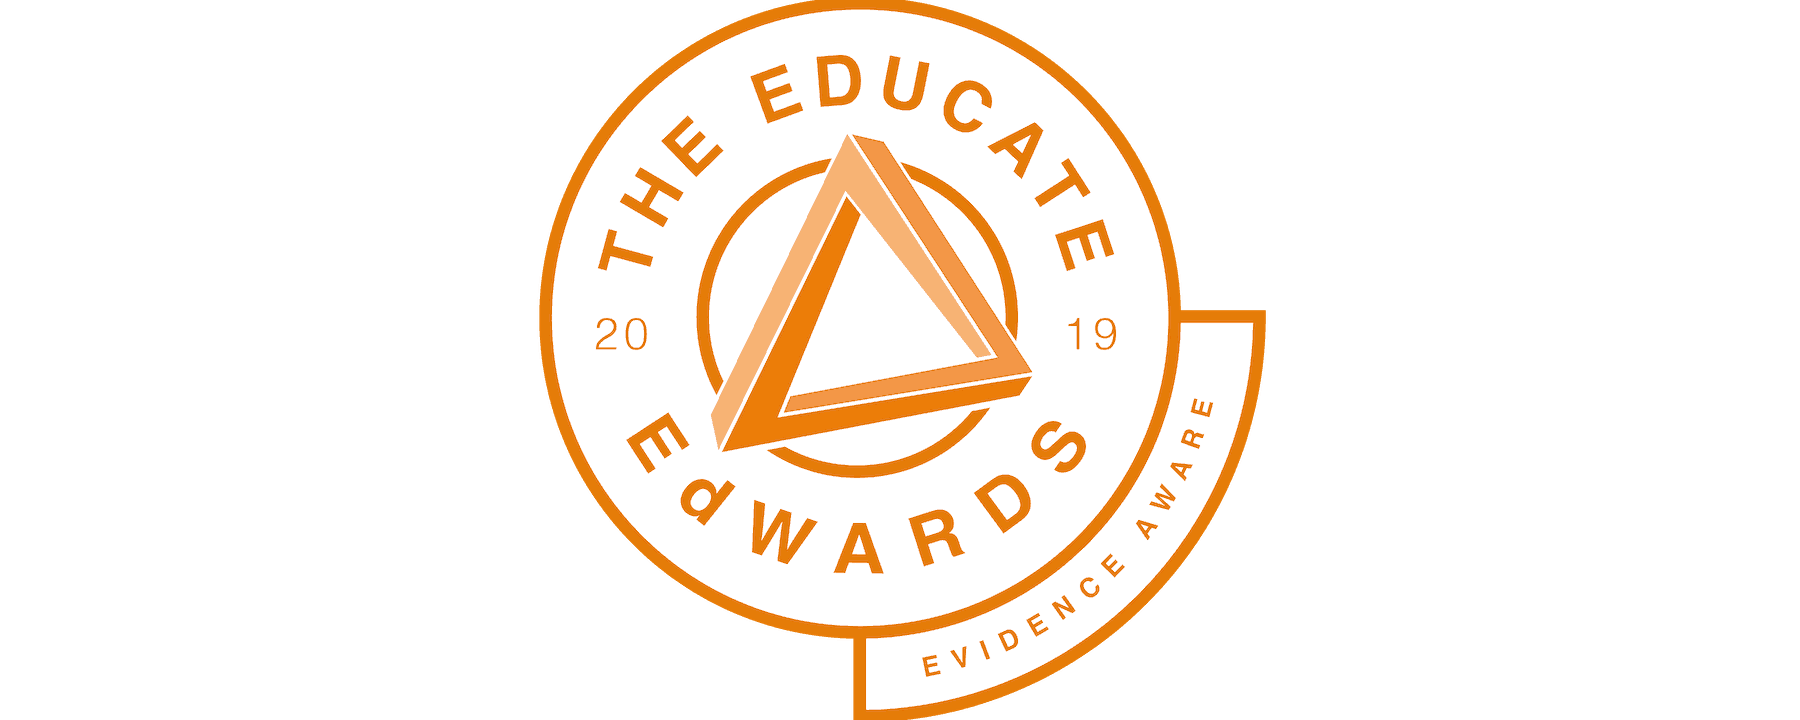 Award-Educate-2019-EDWARD_AWARE-Adapt-with-wide-canvas-4